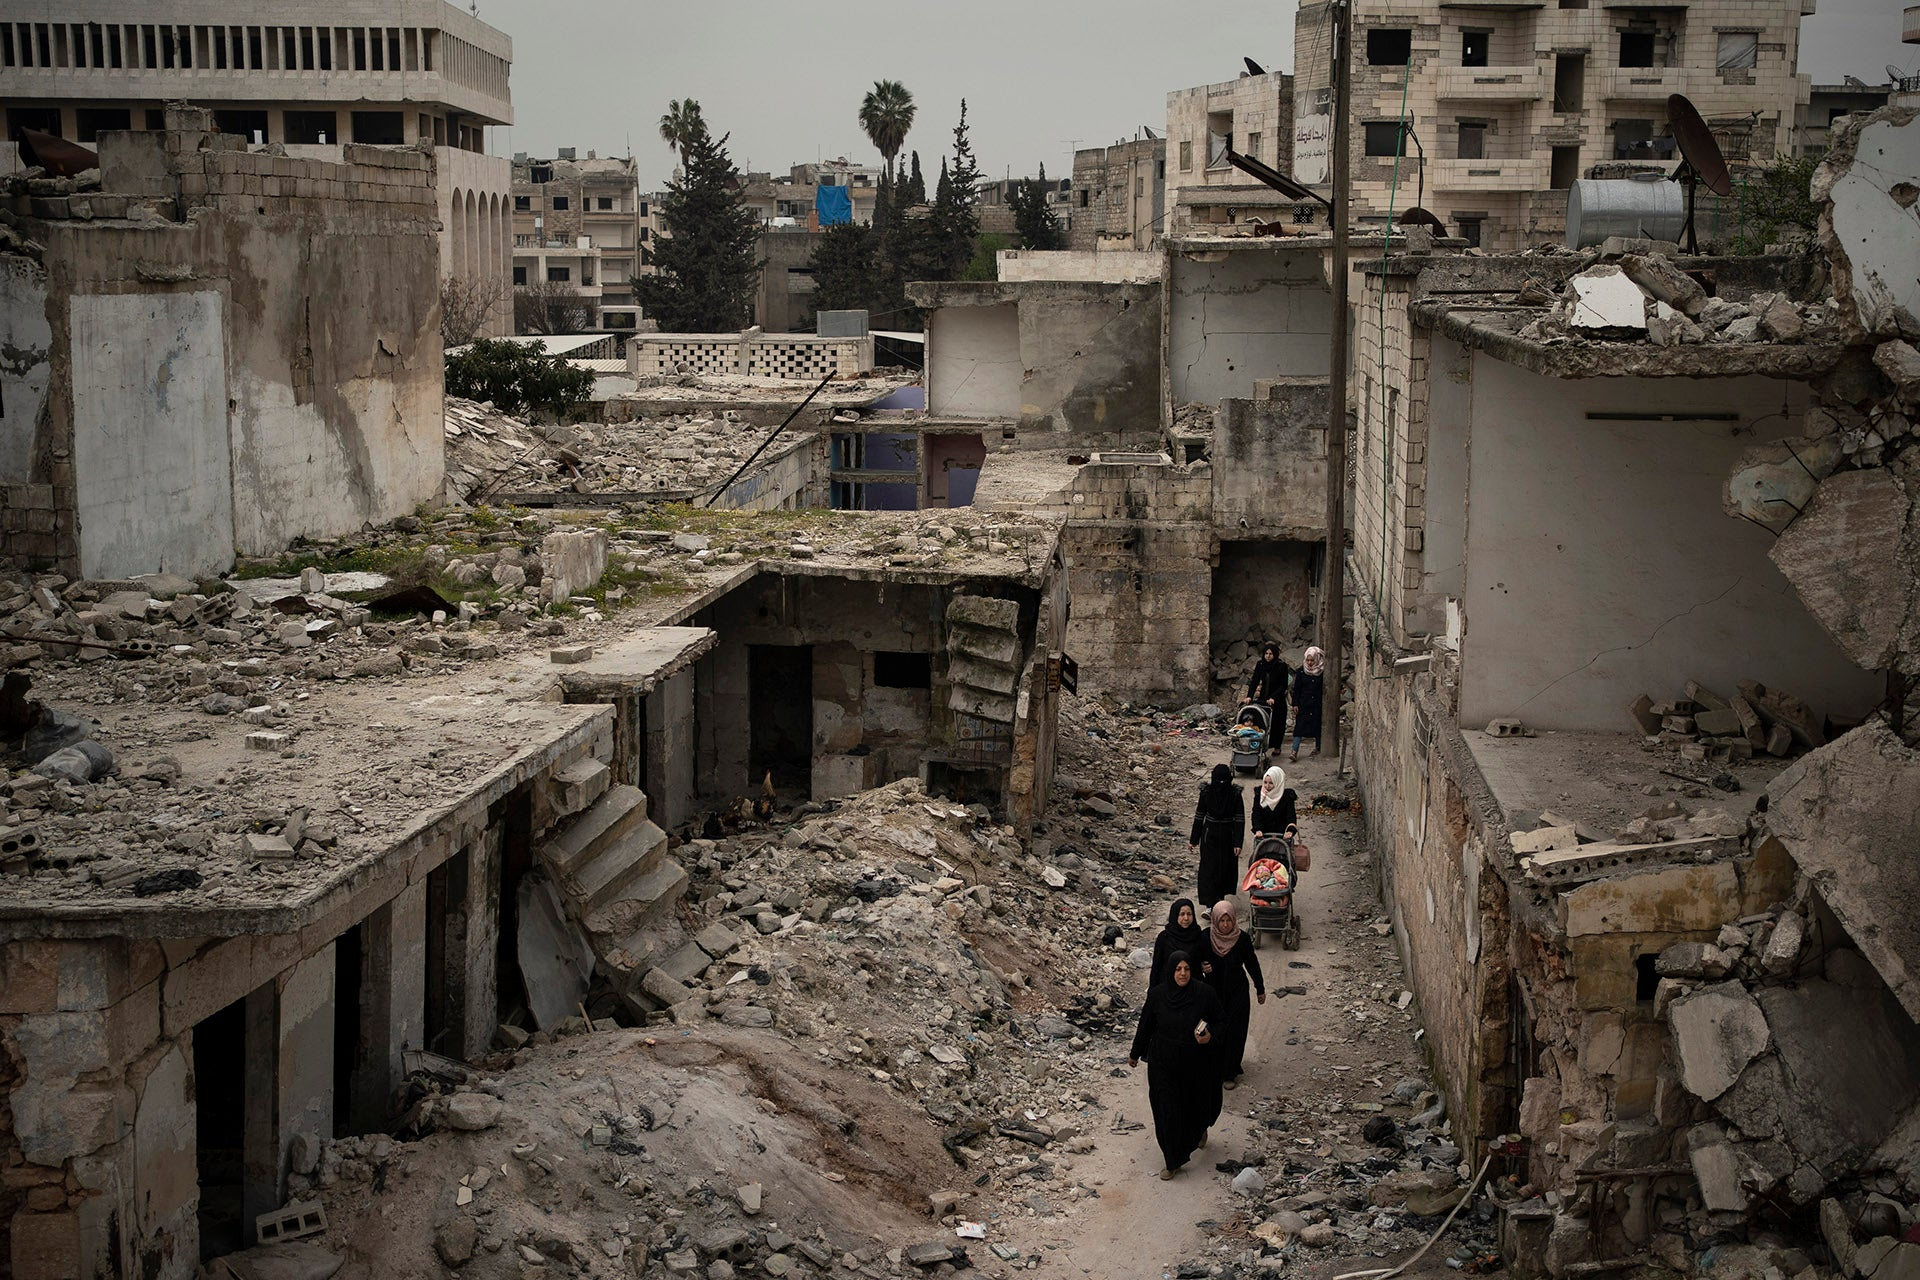 Russia Eviscerates Syria Cross-Border Aid Program Despite Pandemic | Human Rights Watch